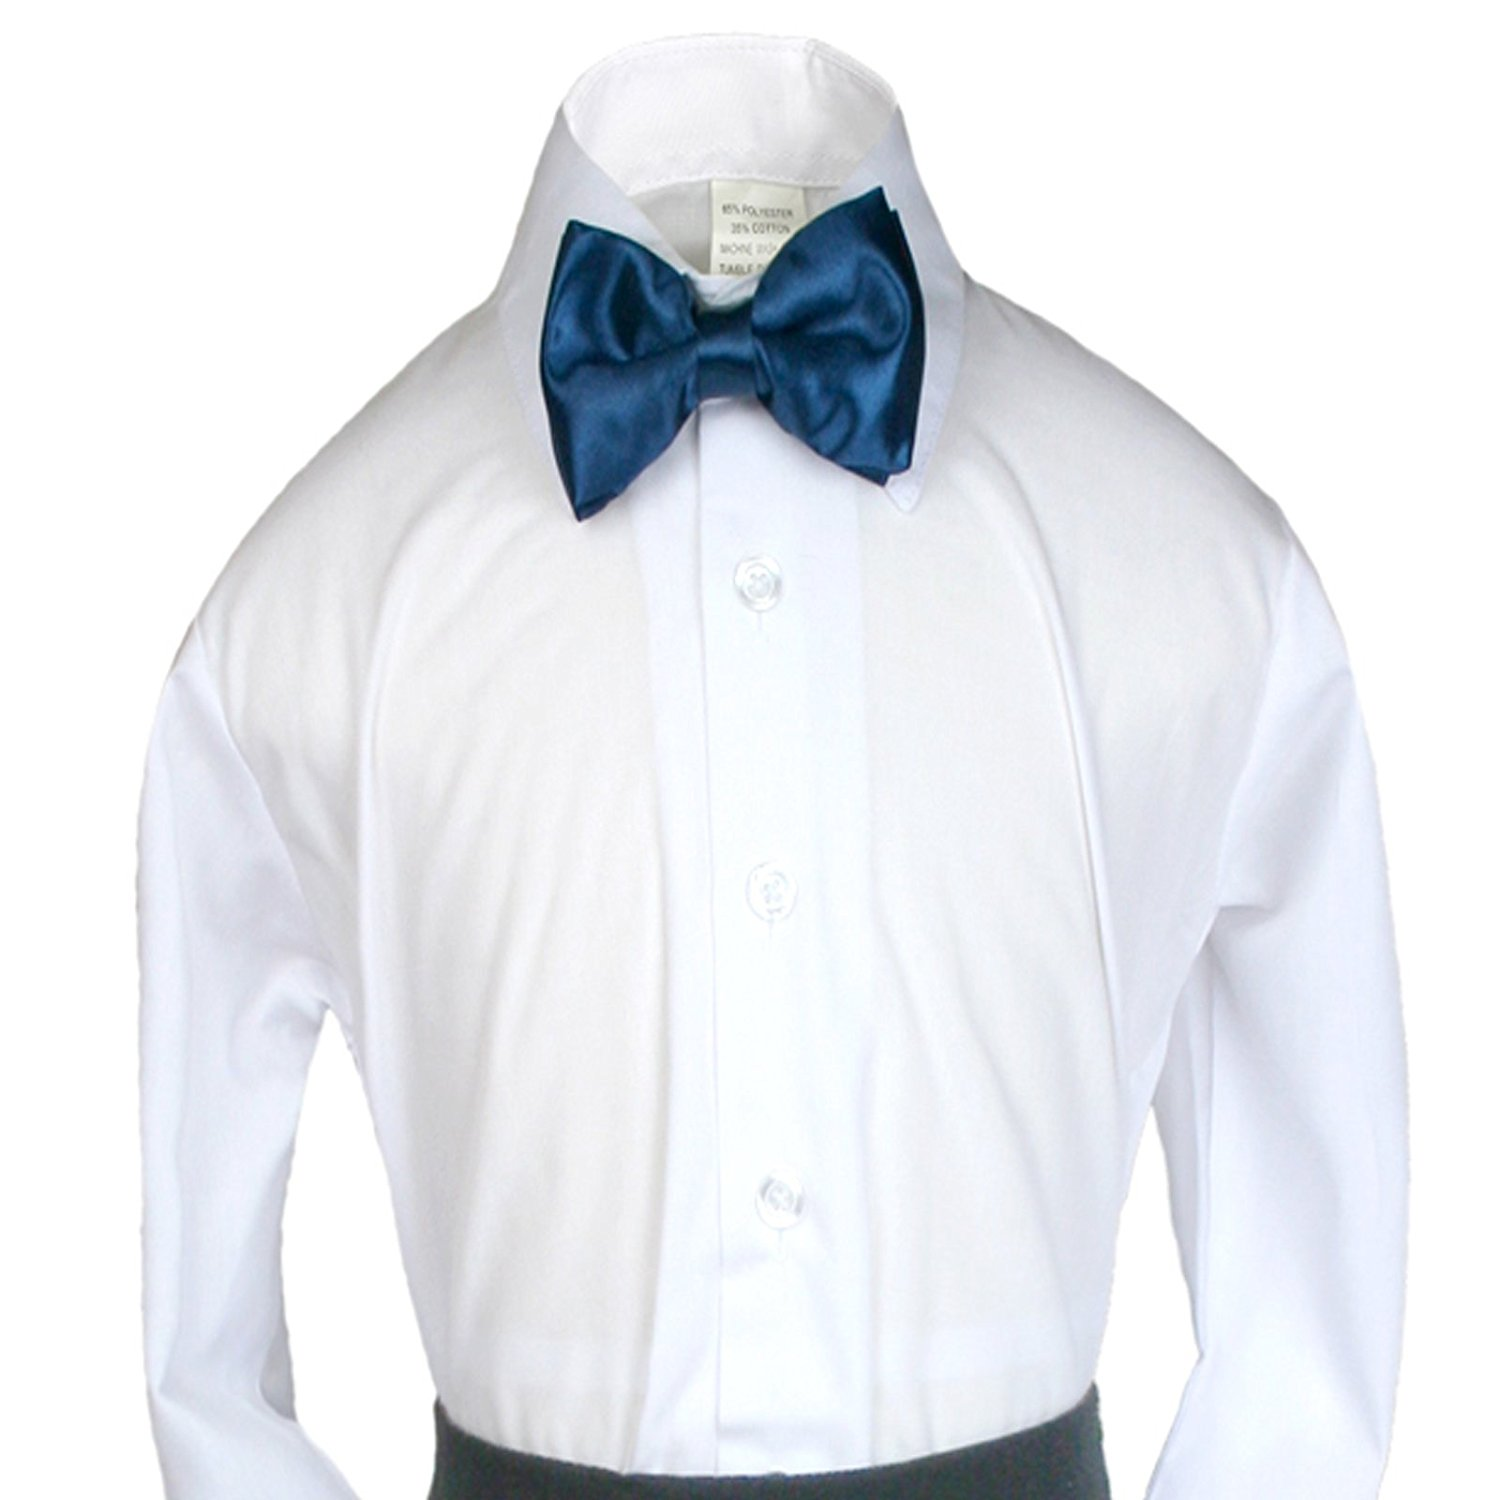 fd64443f6265 Get Quotations · Unotux Boys Suits Tuxedos Formal Wedding Teal Satin Bow Tie  from Baby to Teens